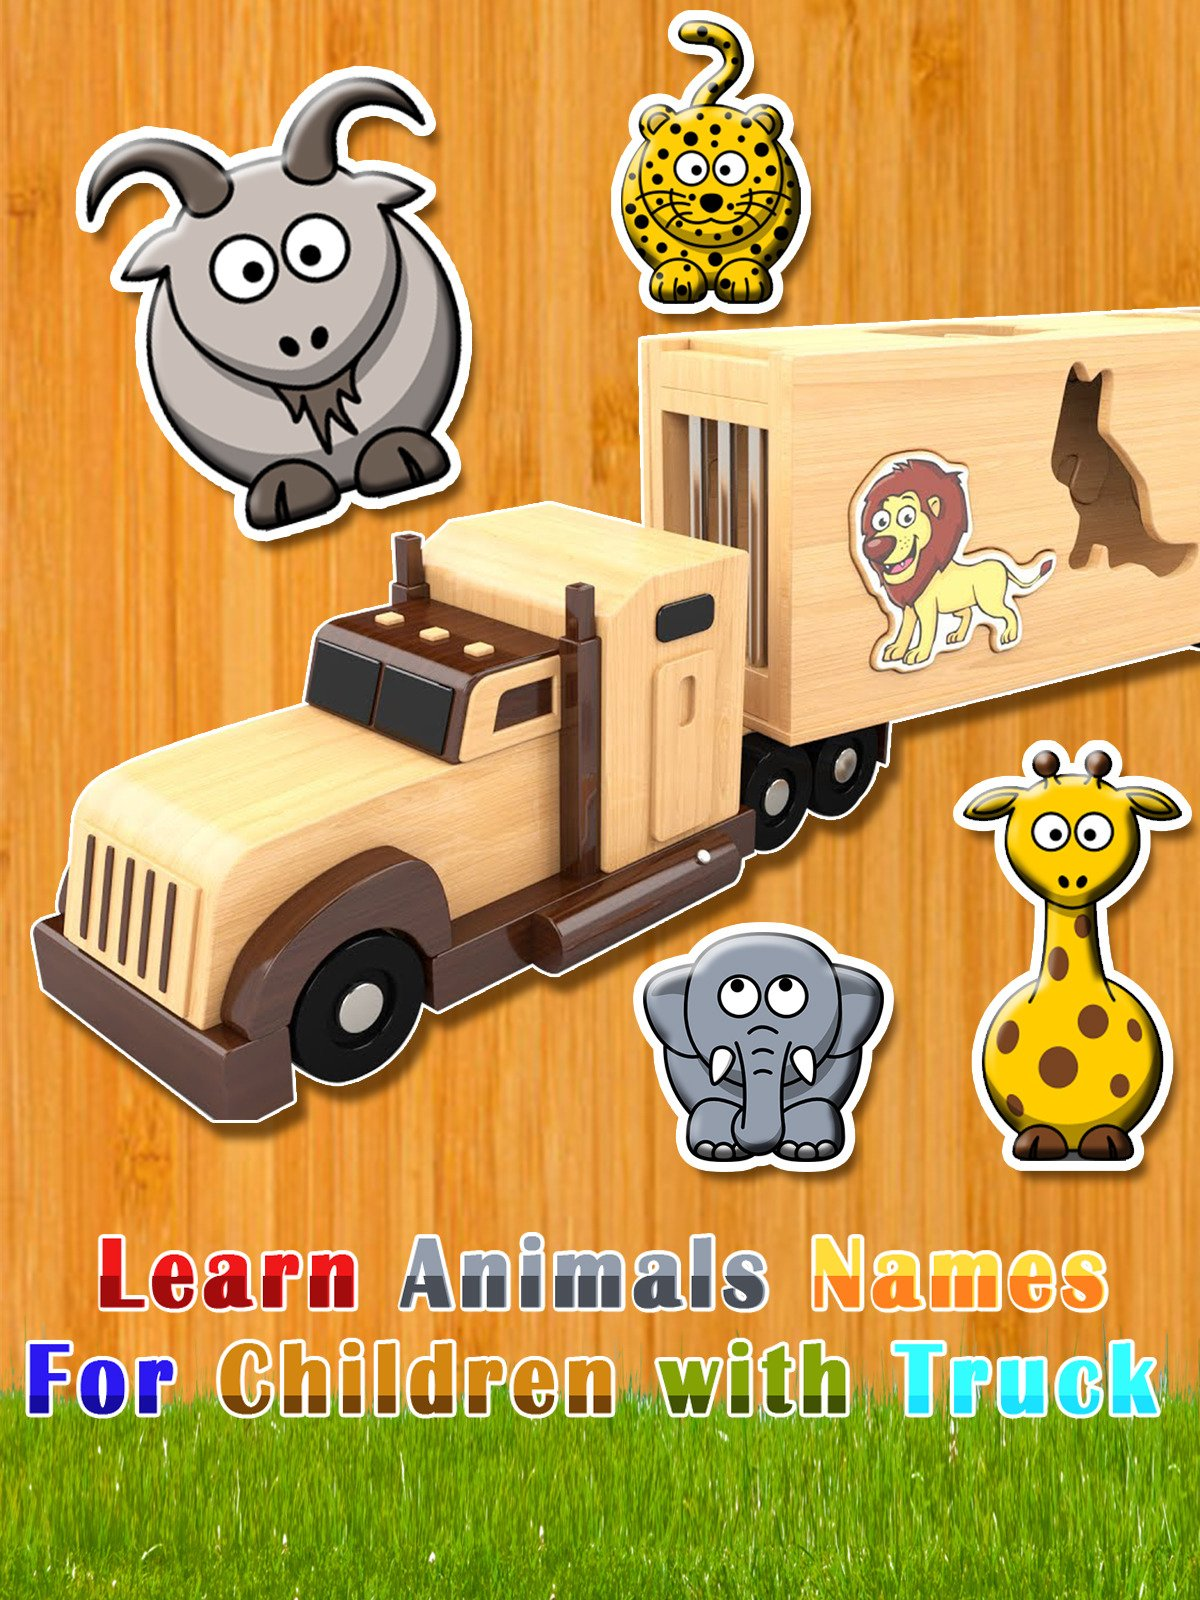 Learn Animals Names For Children with Truck